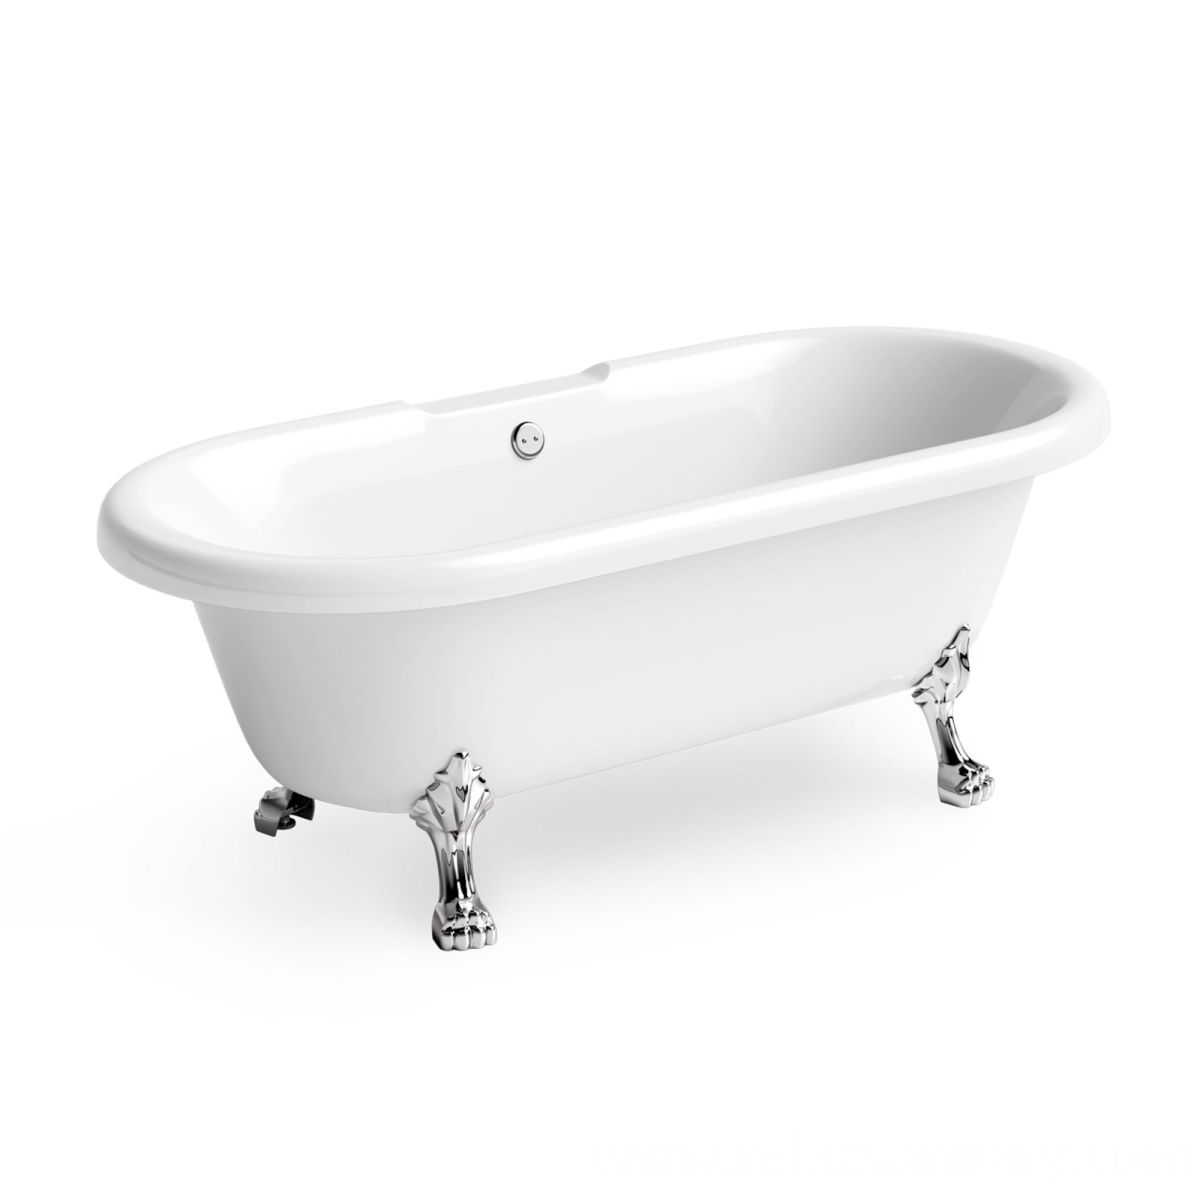 Freestanding Bathtub in Small Bathroom